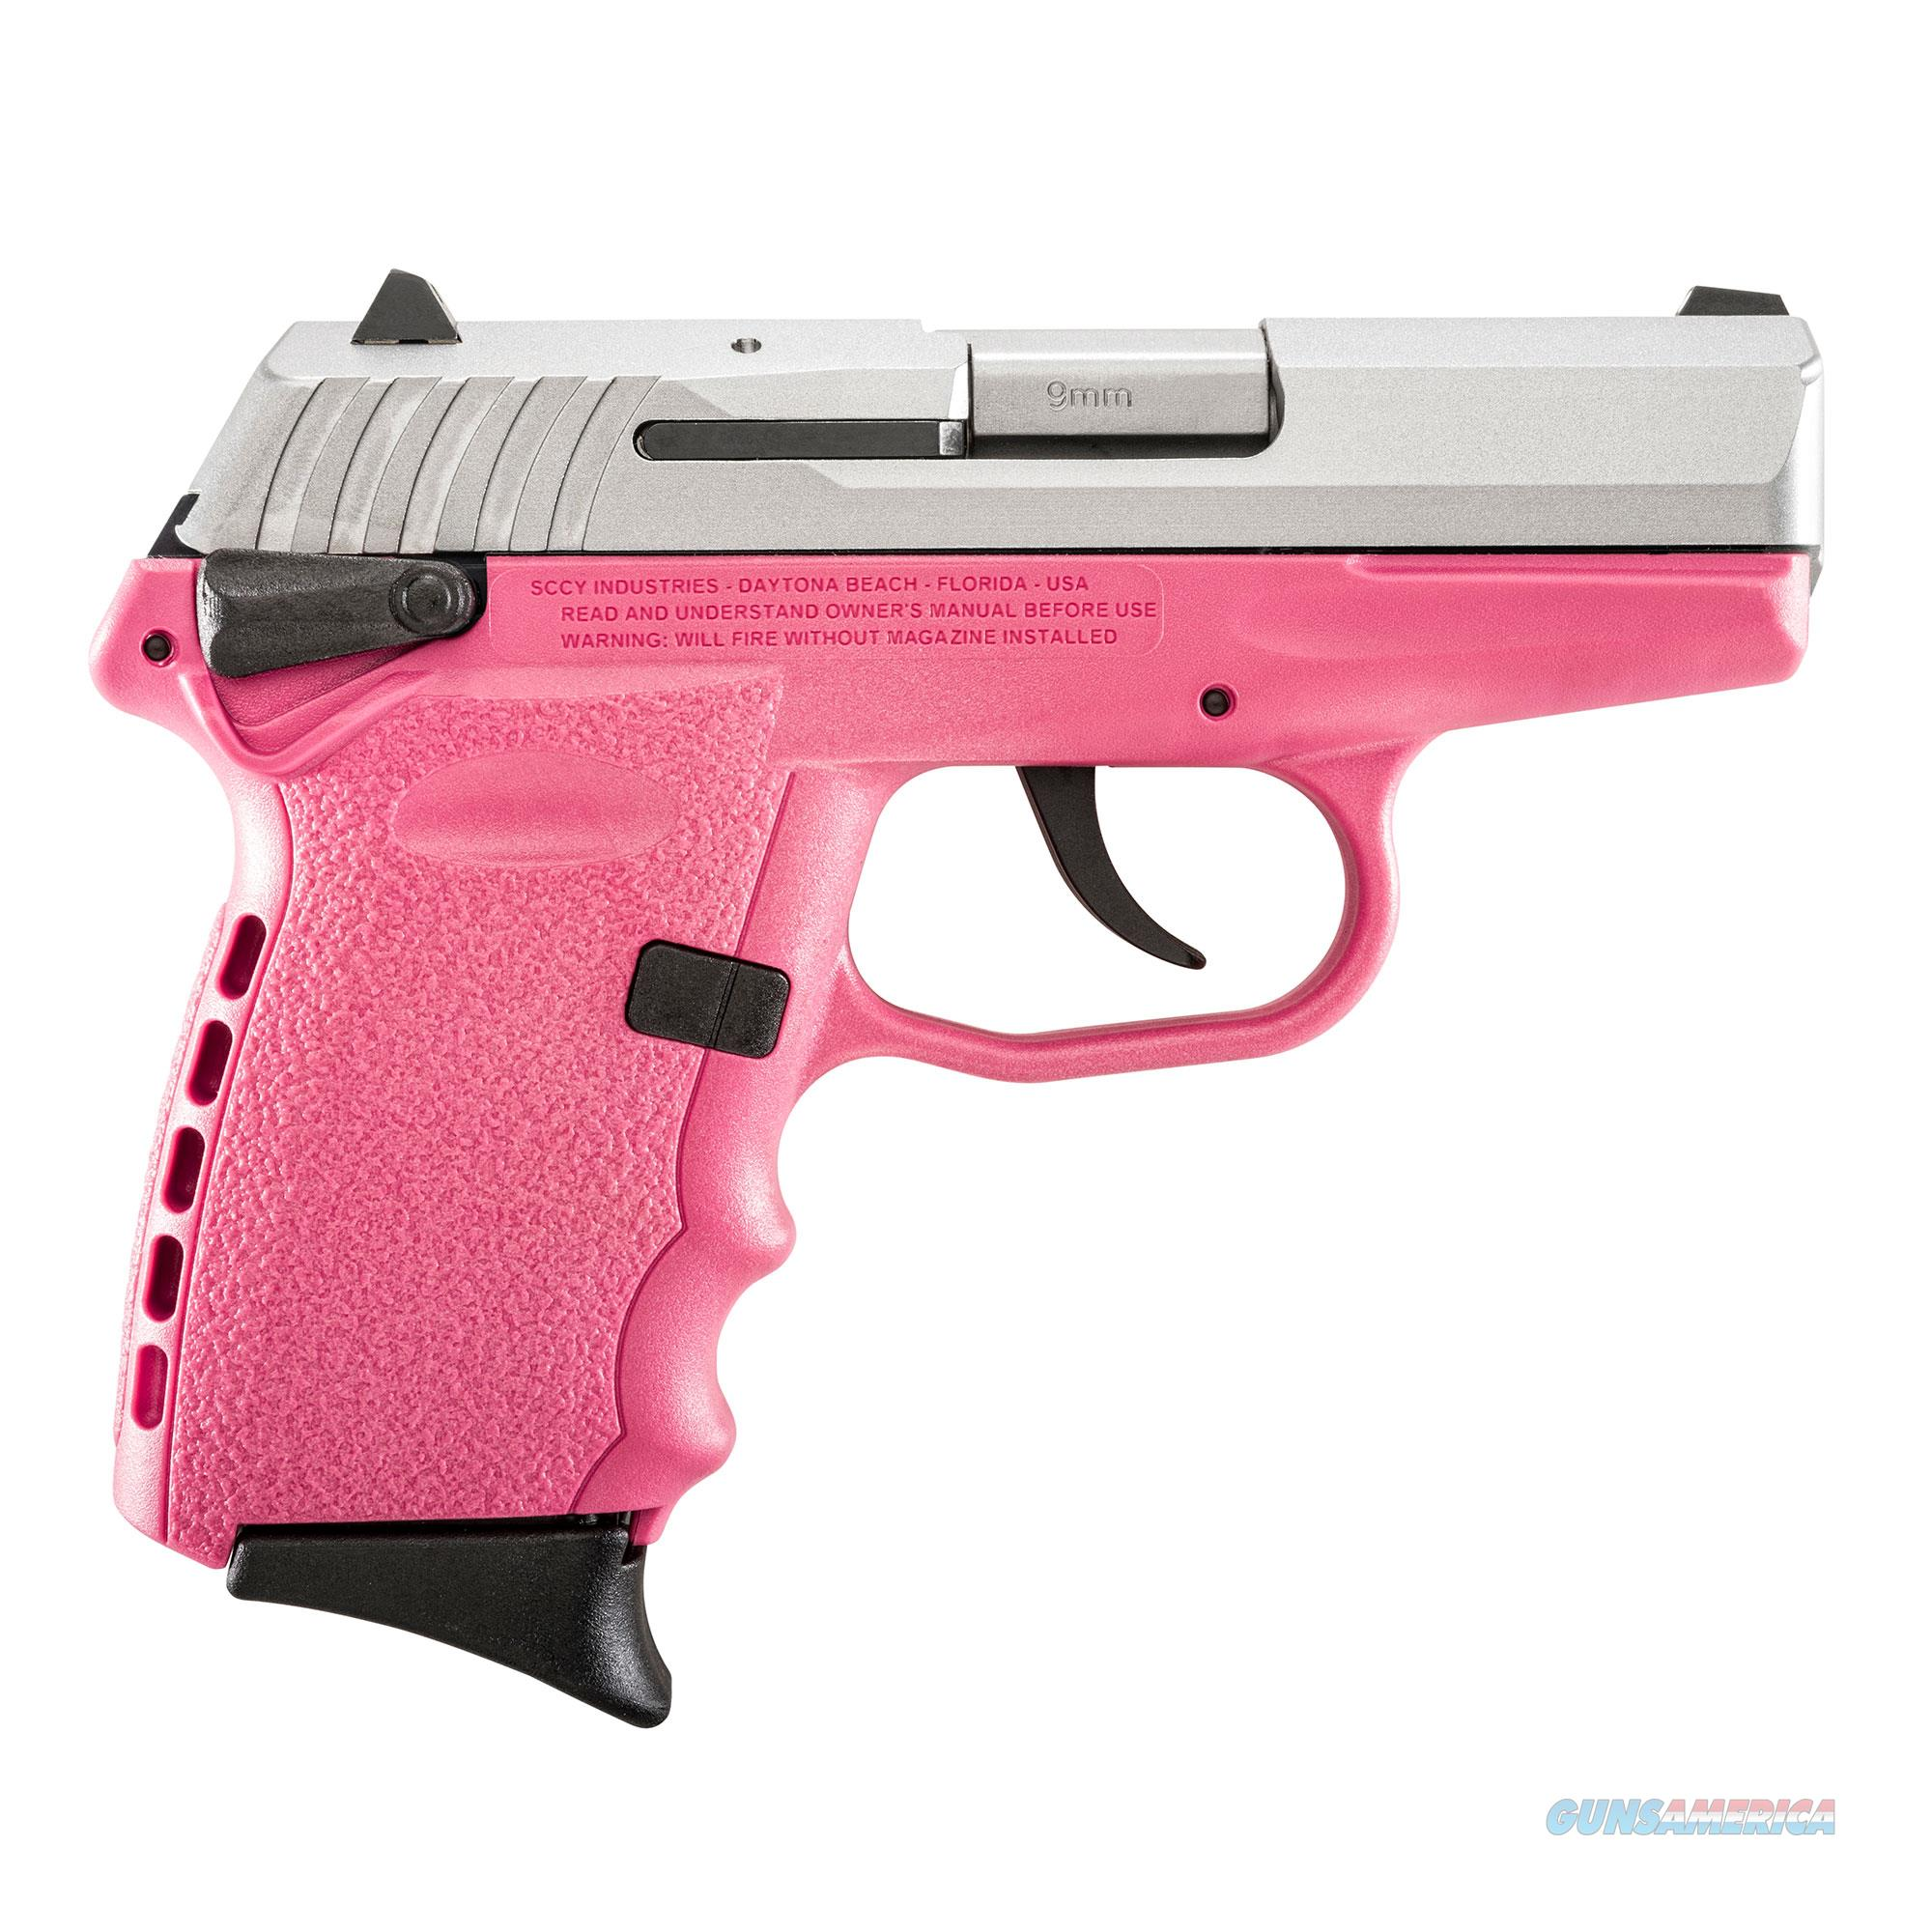 SCCY FIREARMS CPX-1 TTPK STAINLESS / PINK 9mm CPX-1TTPK  Guns > Pistols > SCCY Pistols > CPX1